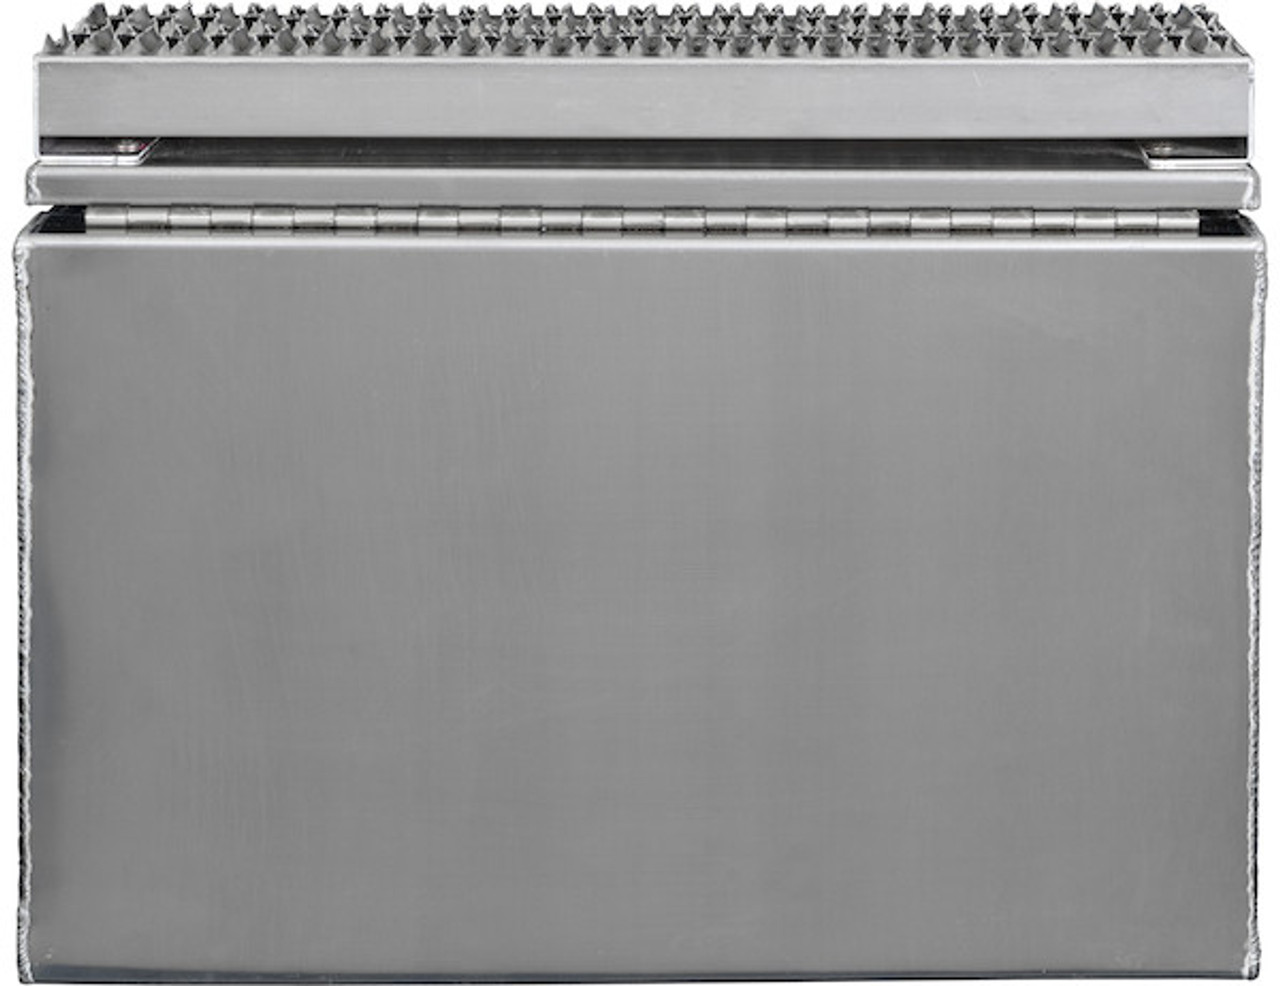 1705283 BUYERS PRODUCTS WideOpen™ Class 8 Step Tool Box For Semi Trucks - 30 Inch Width 3